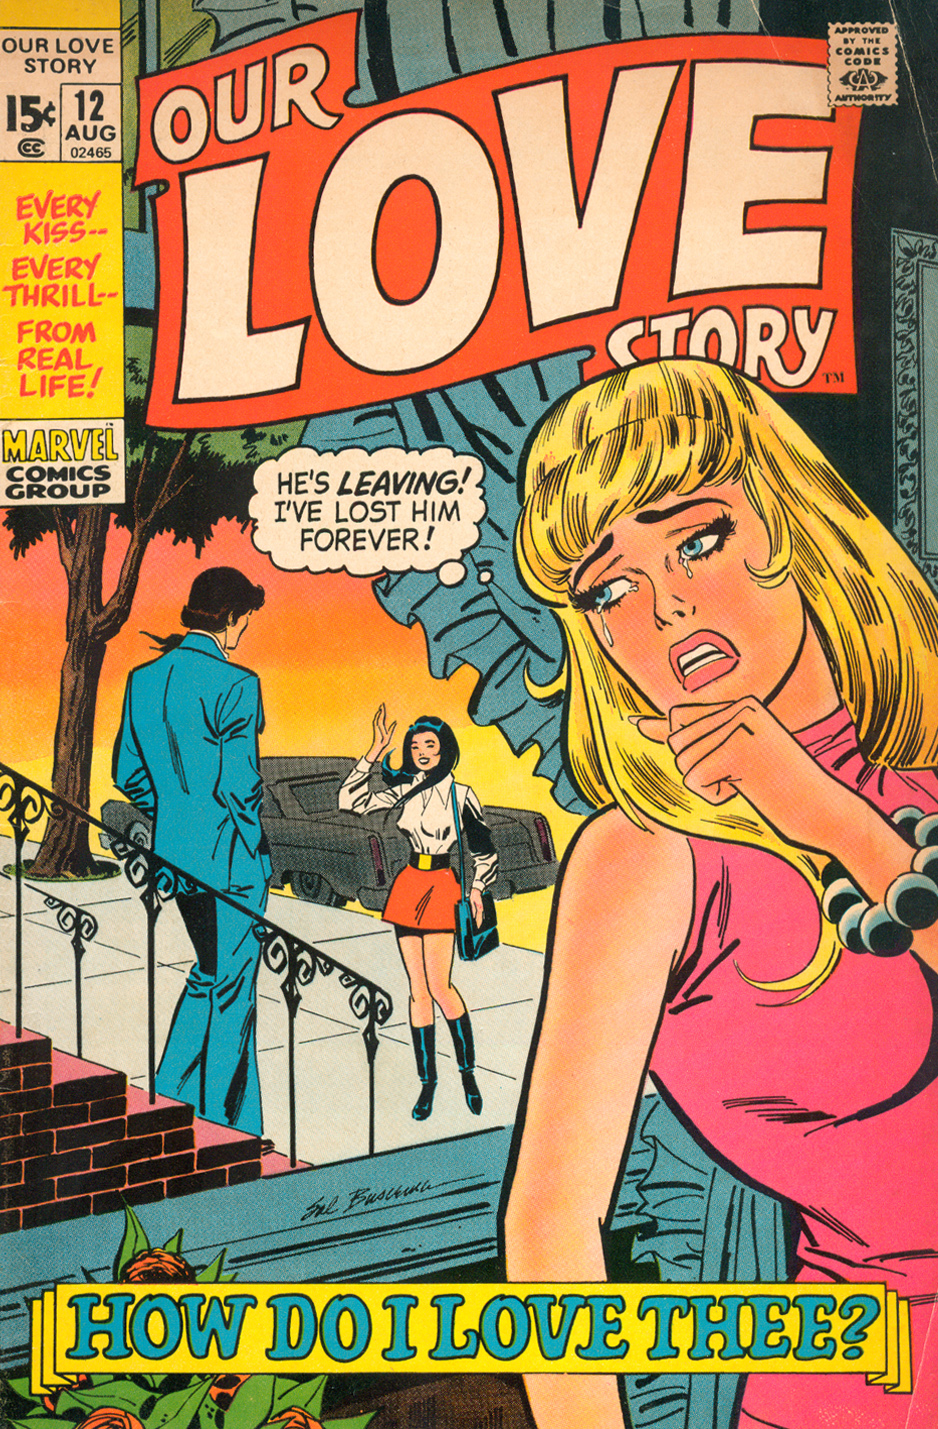 Cover art by Sal Buscema